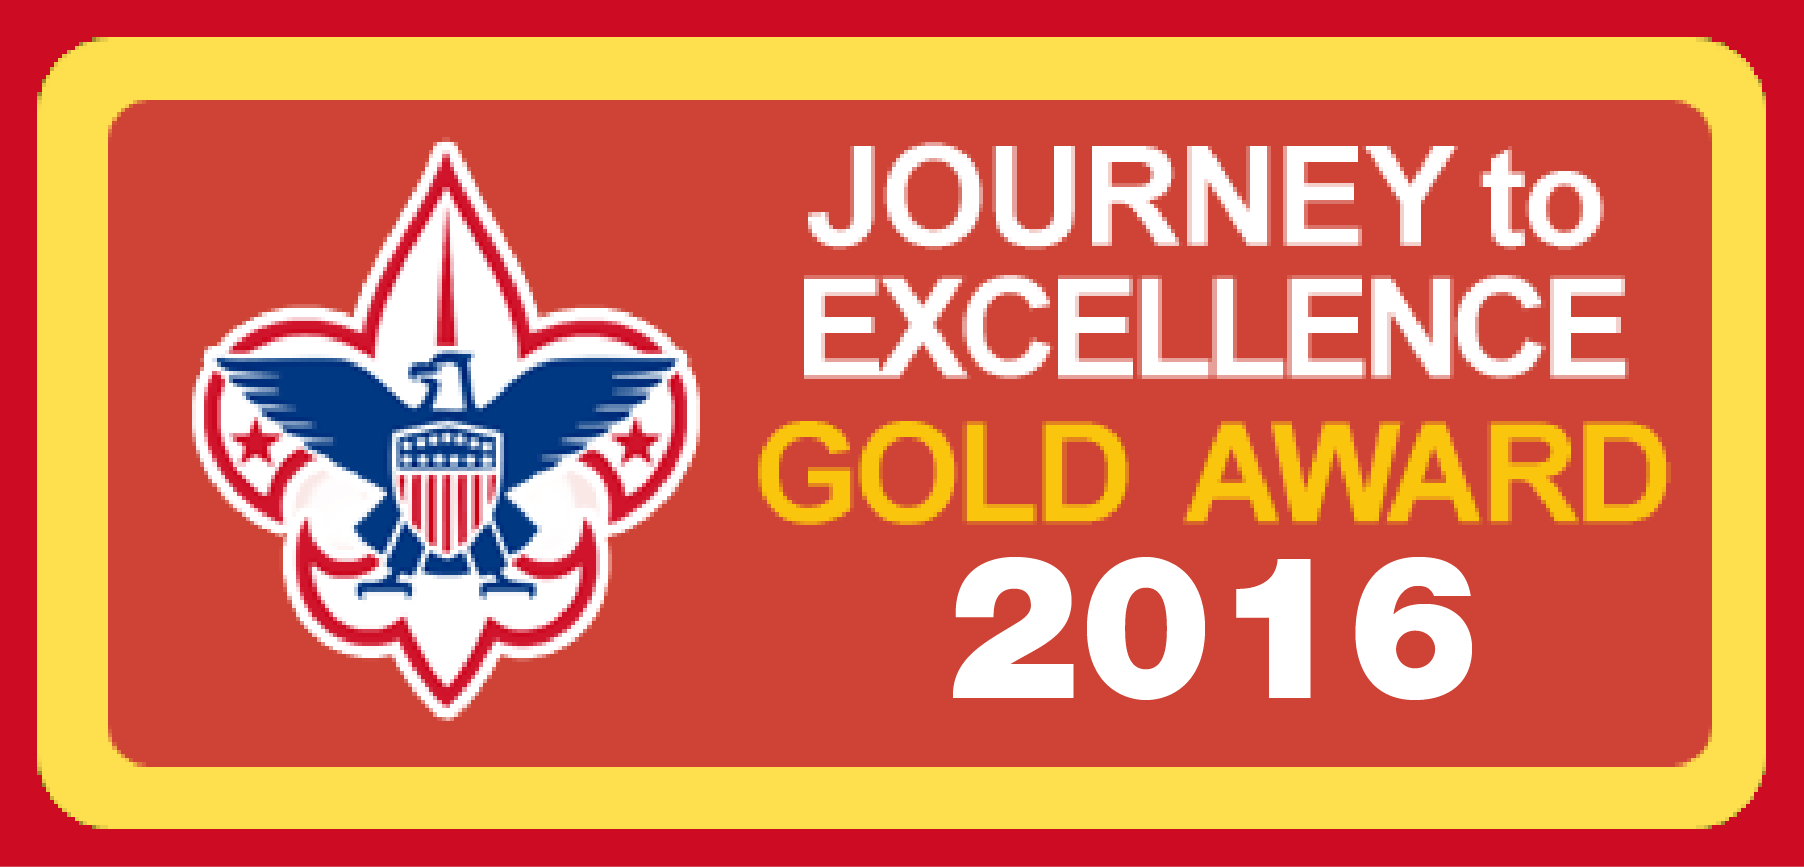 Image result for journey to excellence gold award 2016